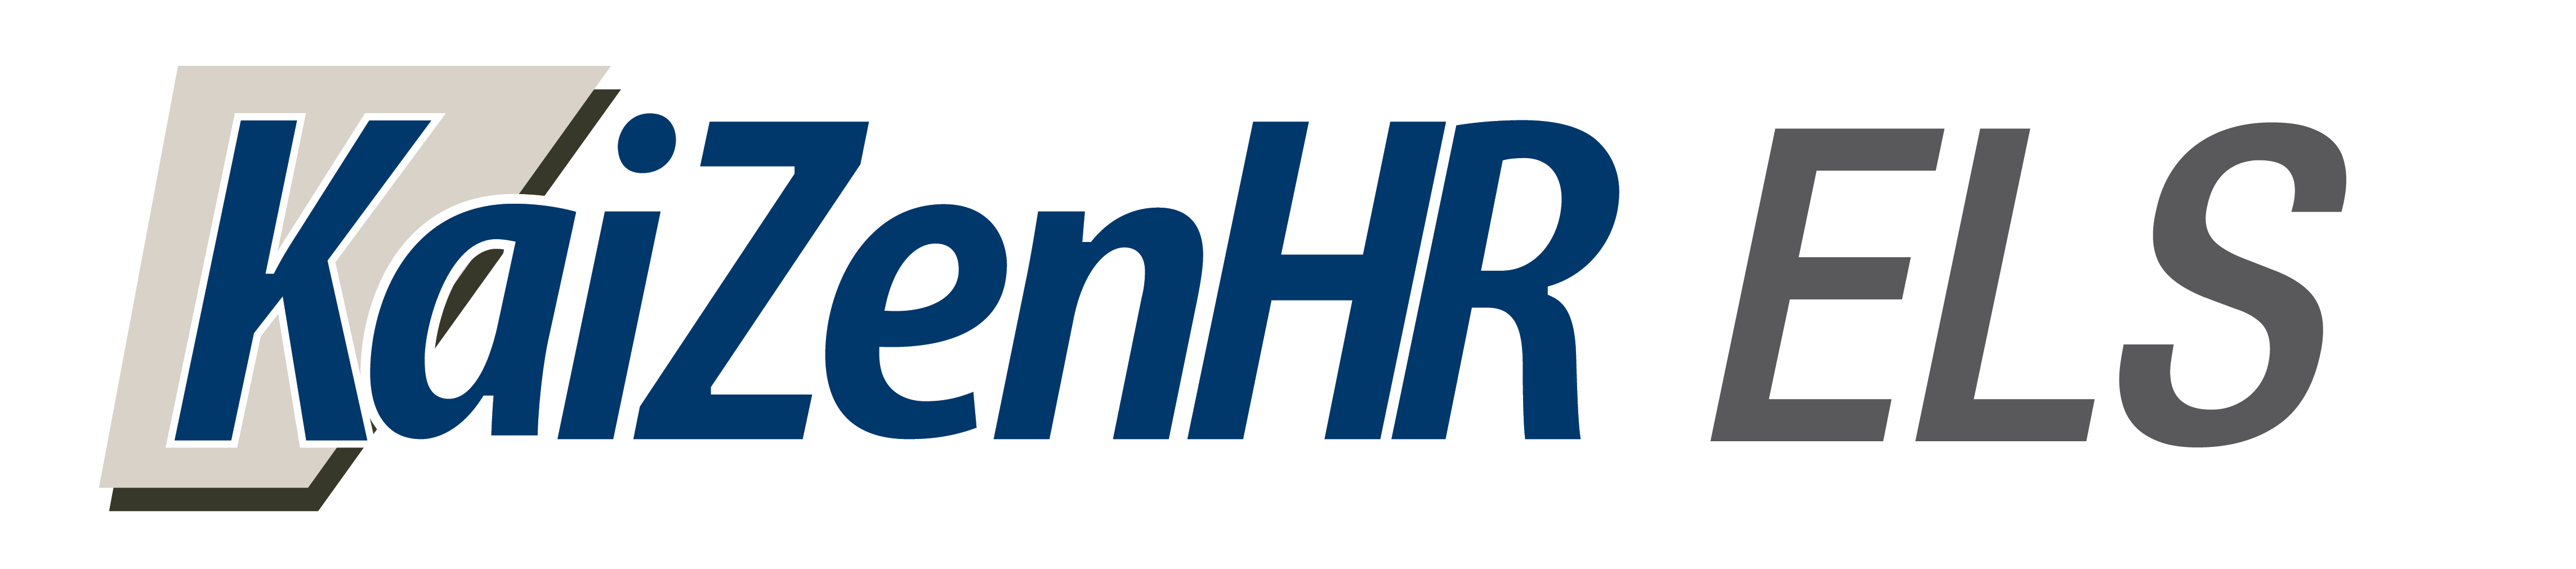 Malaysia Human Resource Management System HR Software Solution